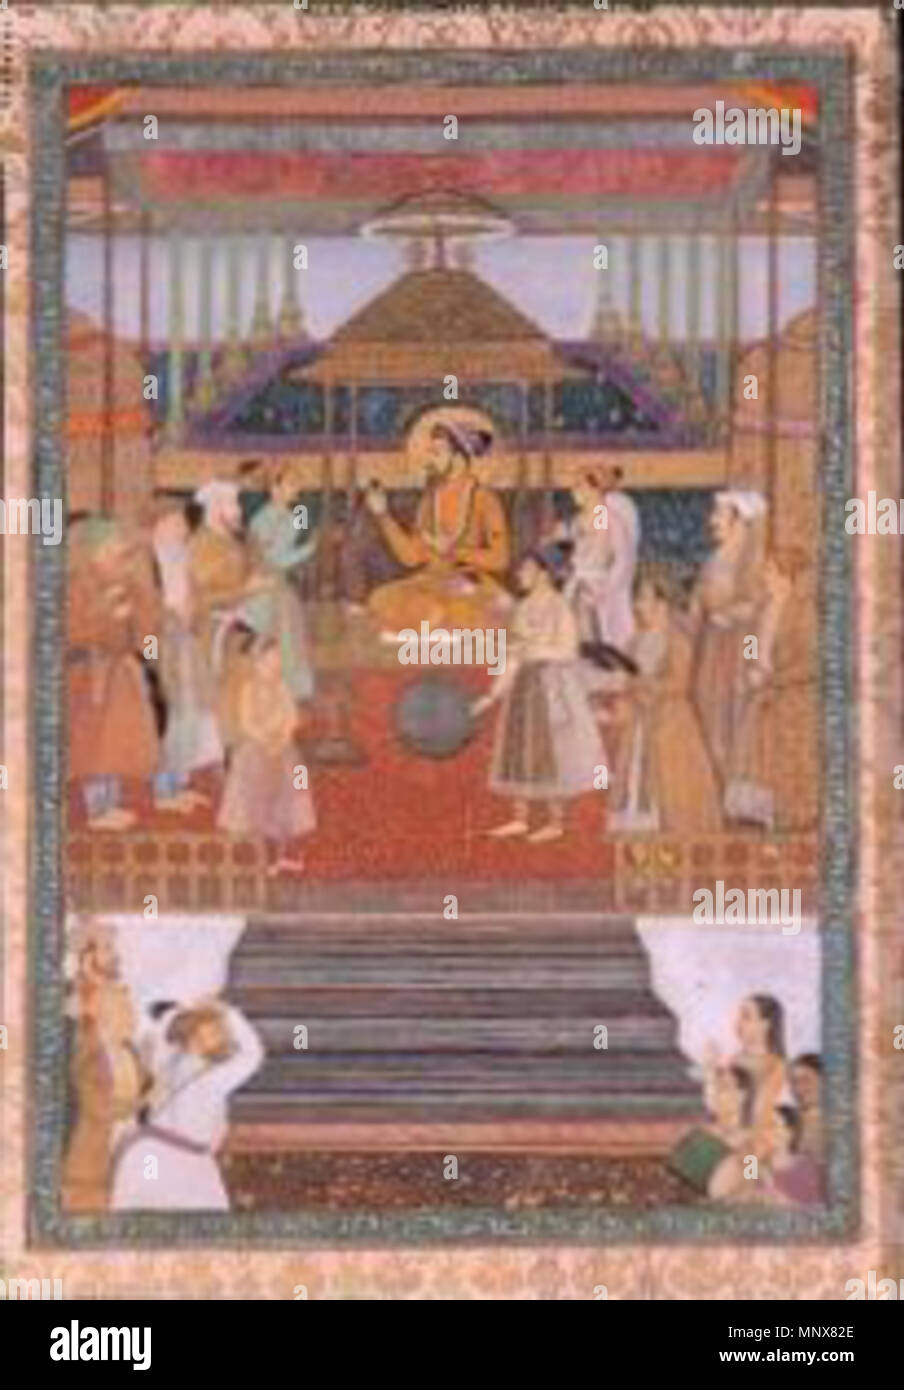 . English: Portrait of the Emperor Shah Jahan on the 'Peacock Throne'. Creation place: India Court: Mughal Series: Shah Jahan with his sons and nobles (L'empereur Shâh Jahân sur le Trône du Paon (Padshâh-nâma)); Celebration of Shah Jahan's Forty-sixth Solar Birthday; Shah Jahan on the Peacock Throne; Shha Jahan enthroned; Celebration of Shah Jahan's 46th Solar Birthda Media & Support: Opaque watercolor and gold on paper, mounted as an album page Display Dimensions: 14 7/16 in. x 9 27/32 in. (36.7 cm x 25 cm) Credit Line: Edwin Binney 3rd Collection Accession Number: 1990.352 . 1640. 'Abid, son Stock Photo